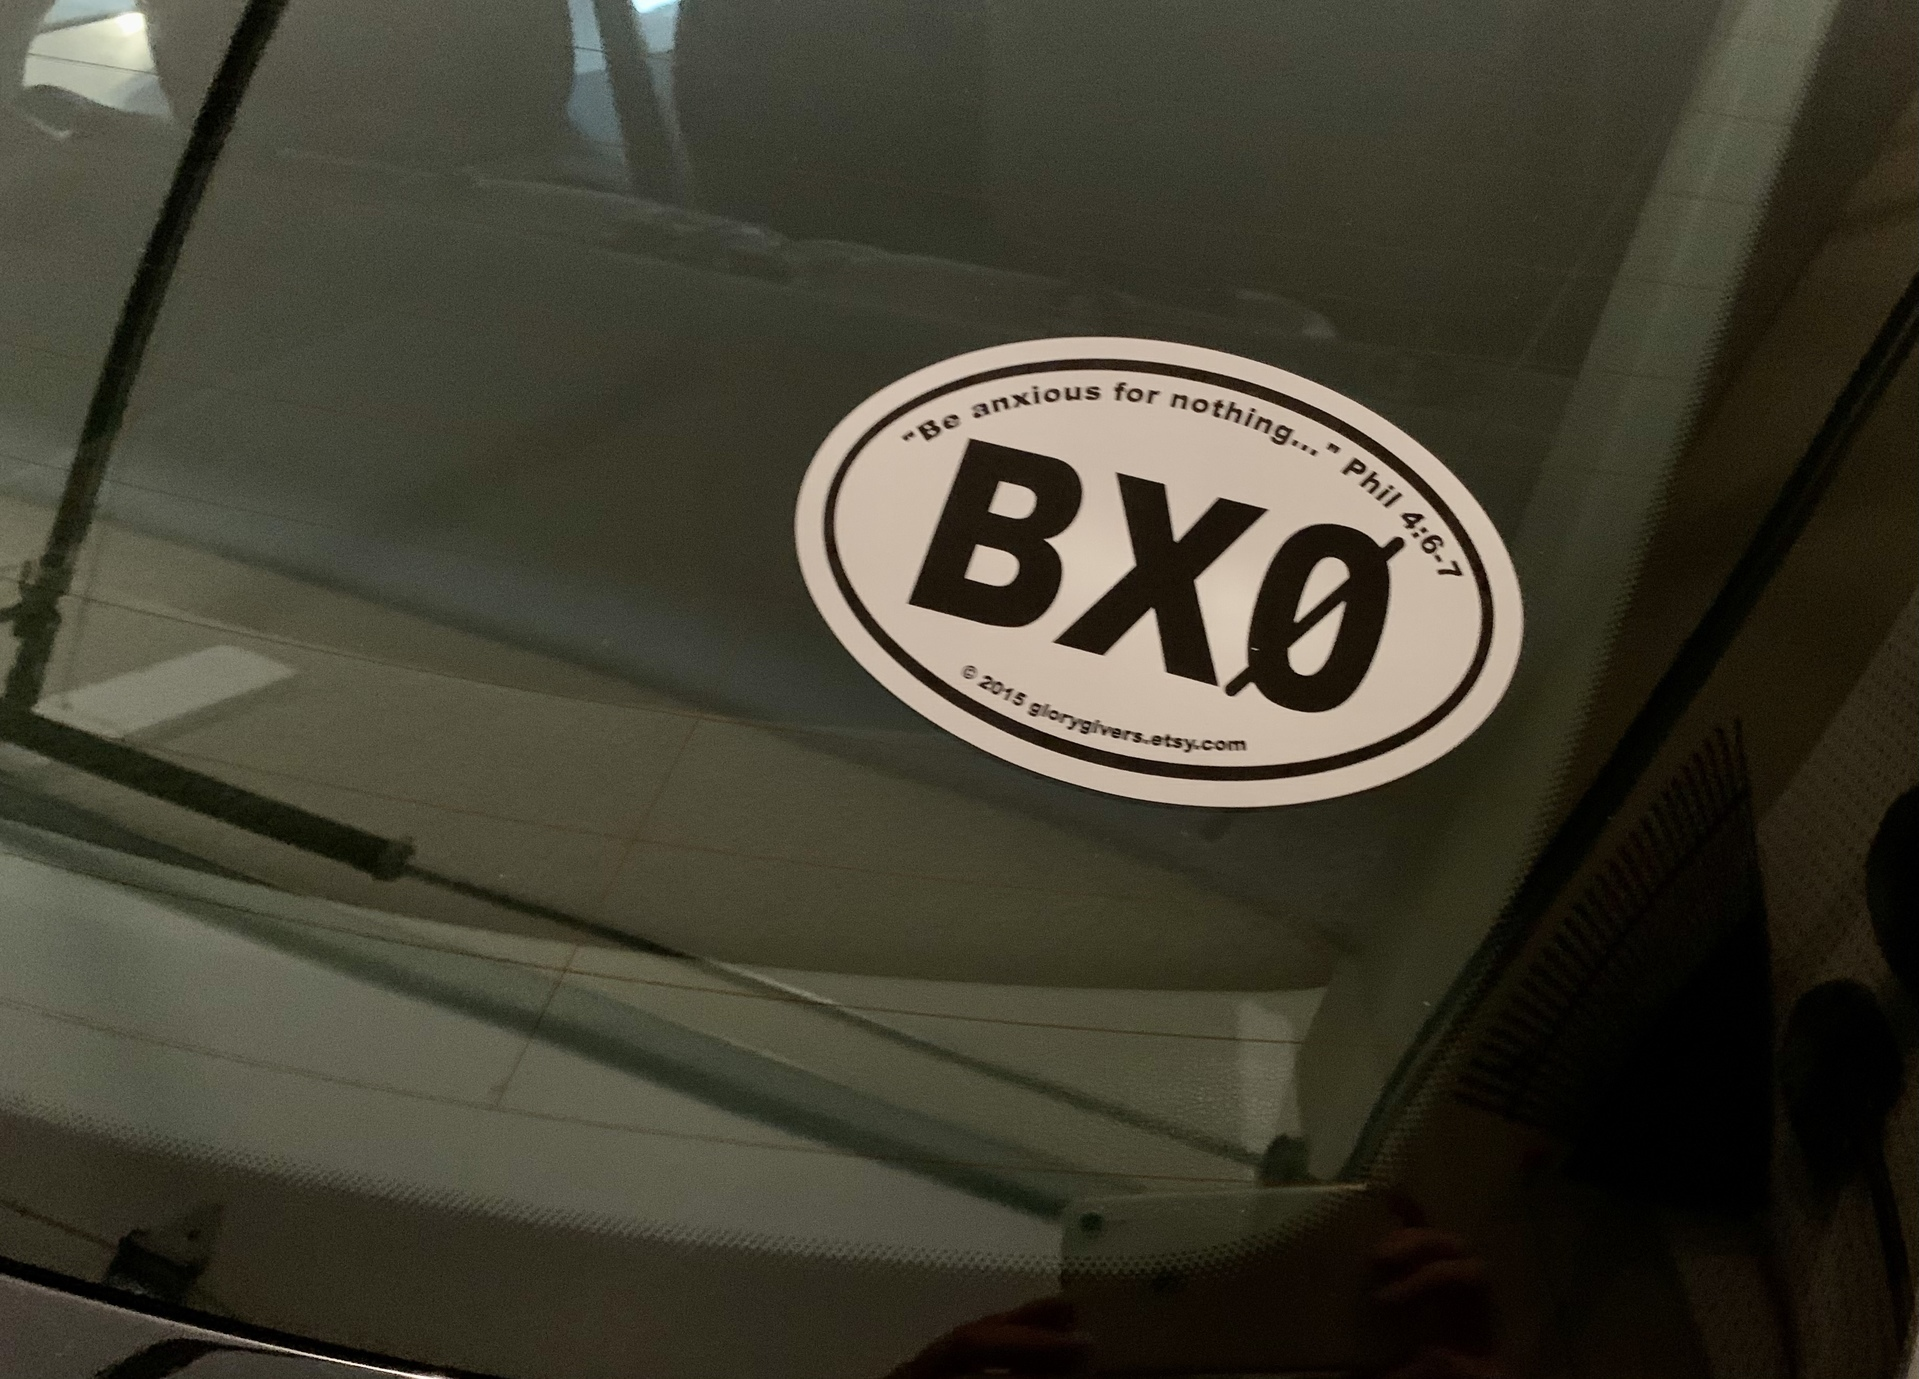 Susan's photograph of their Custom Printed Oval Stickers